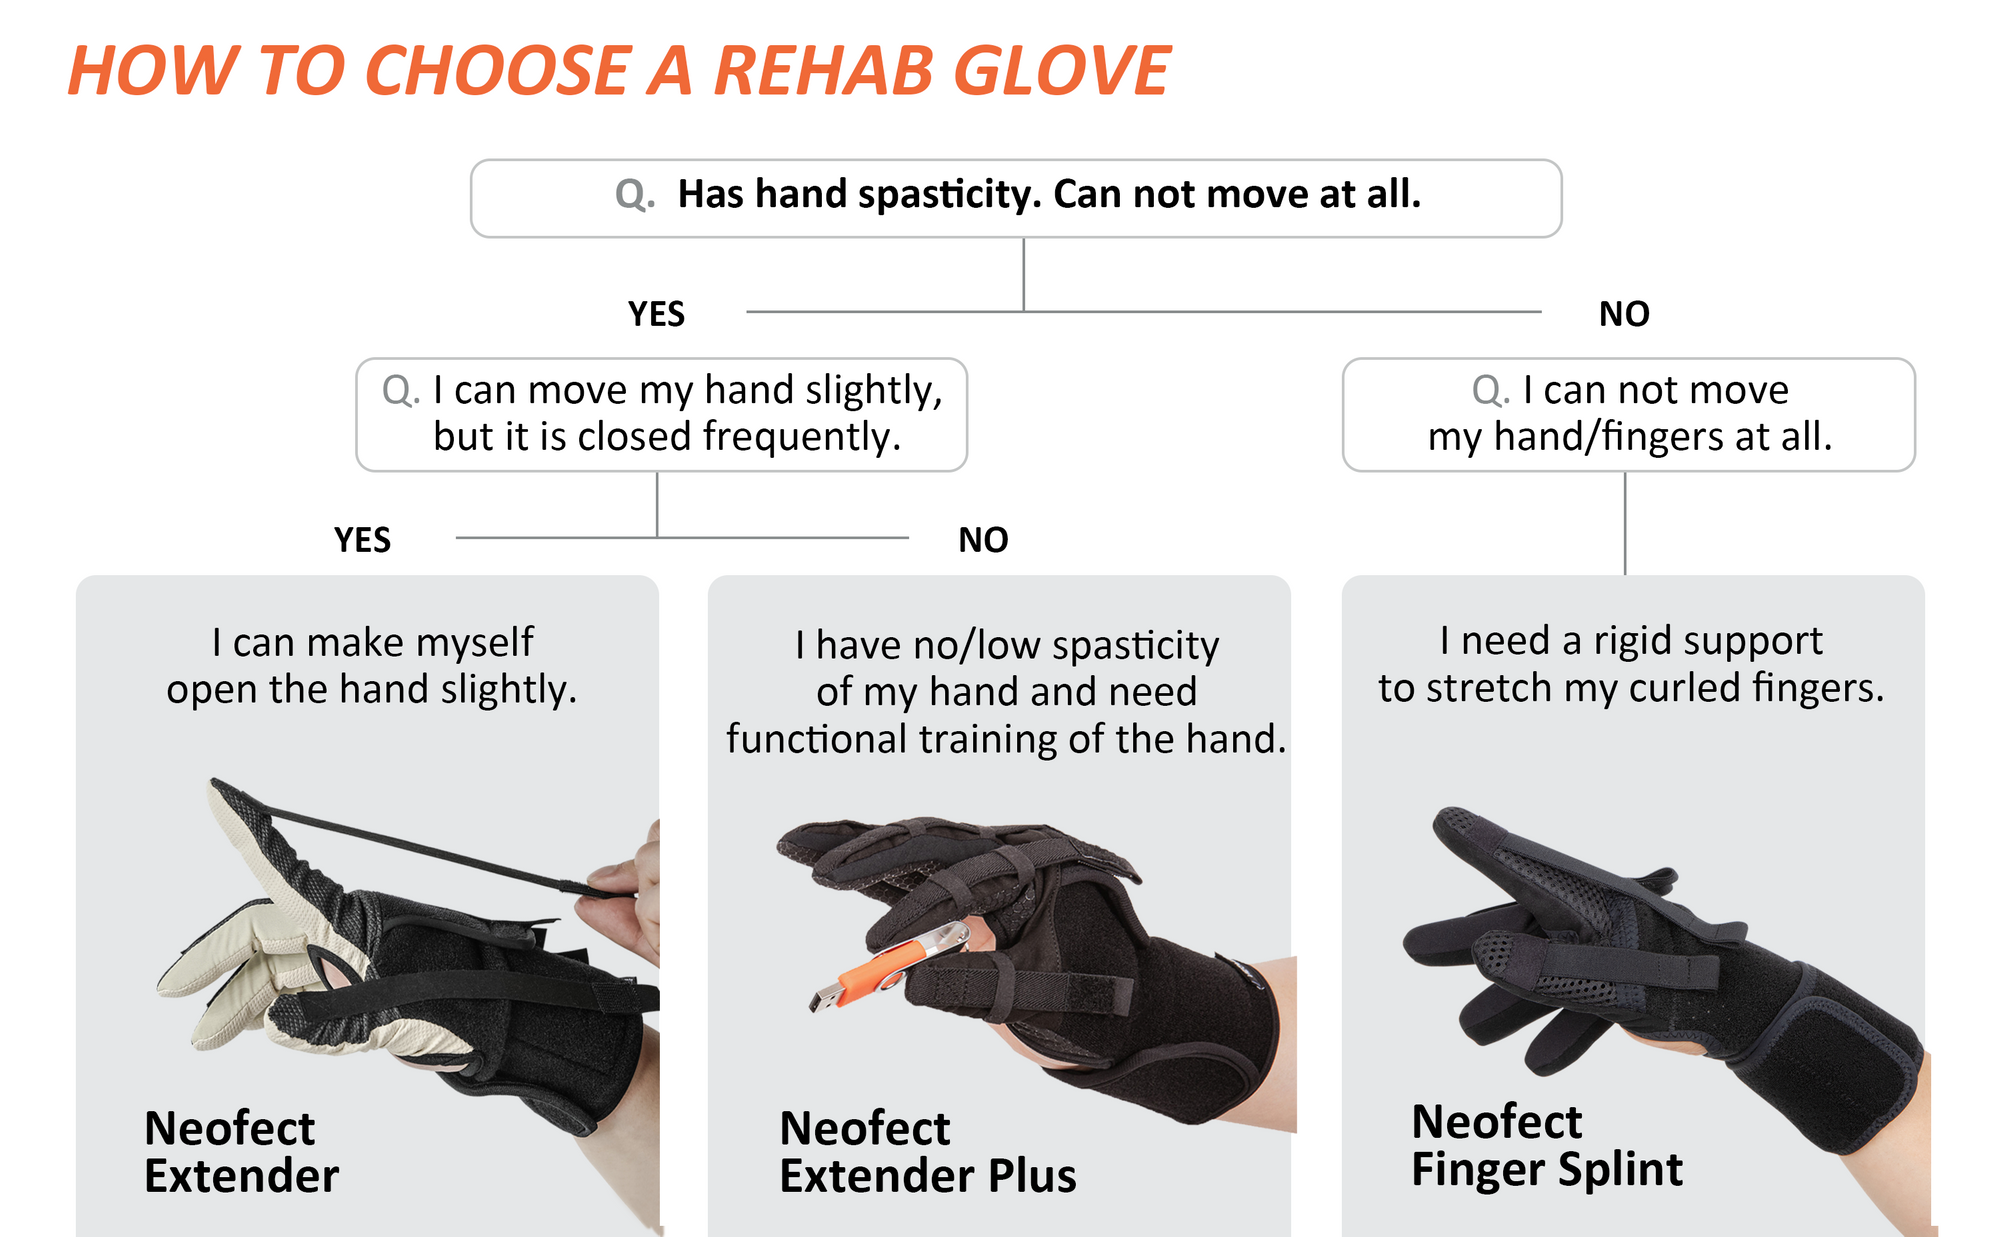 How to choose hand rehab glove for those who has hand spasticity